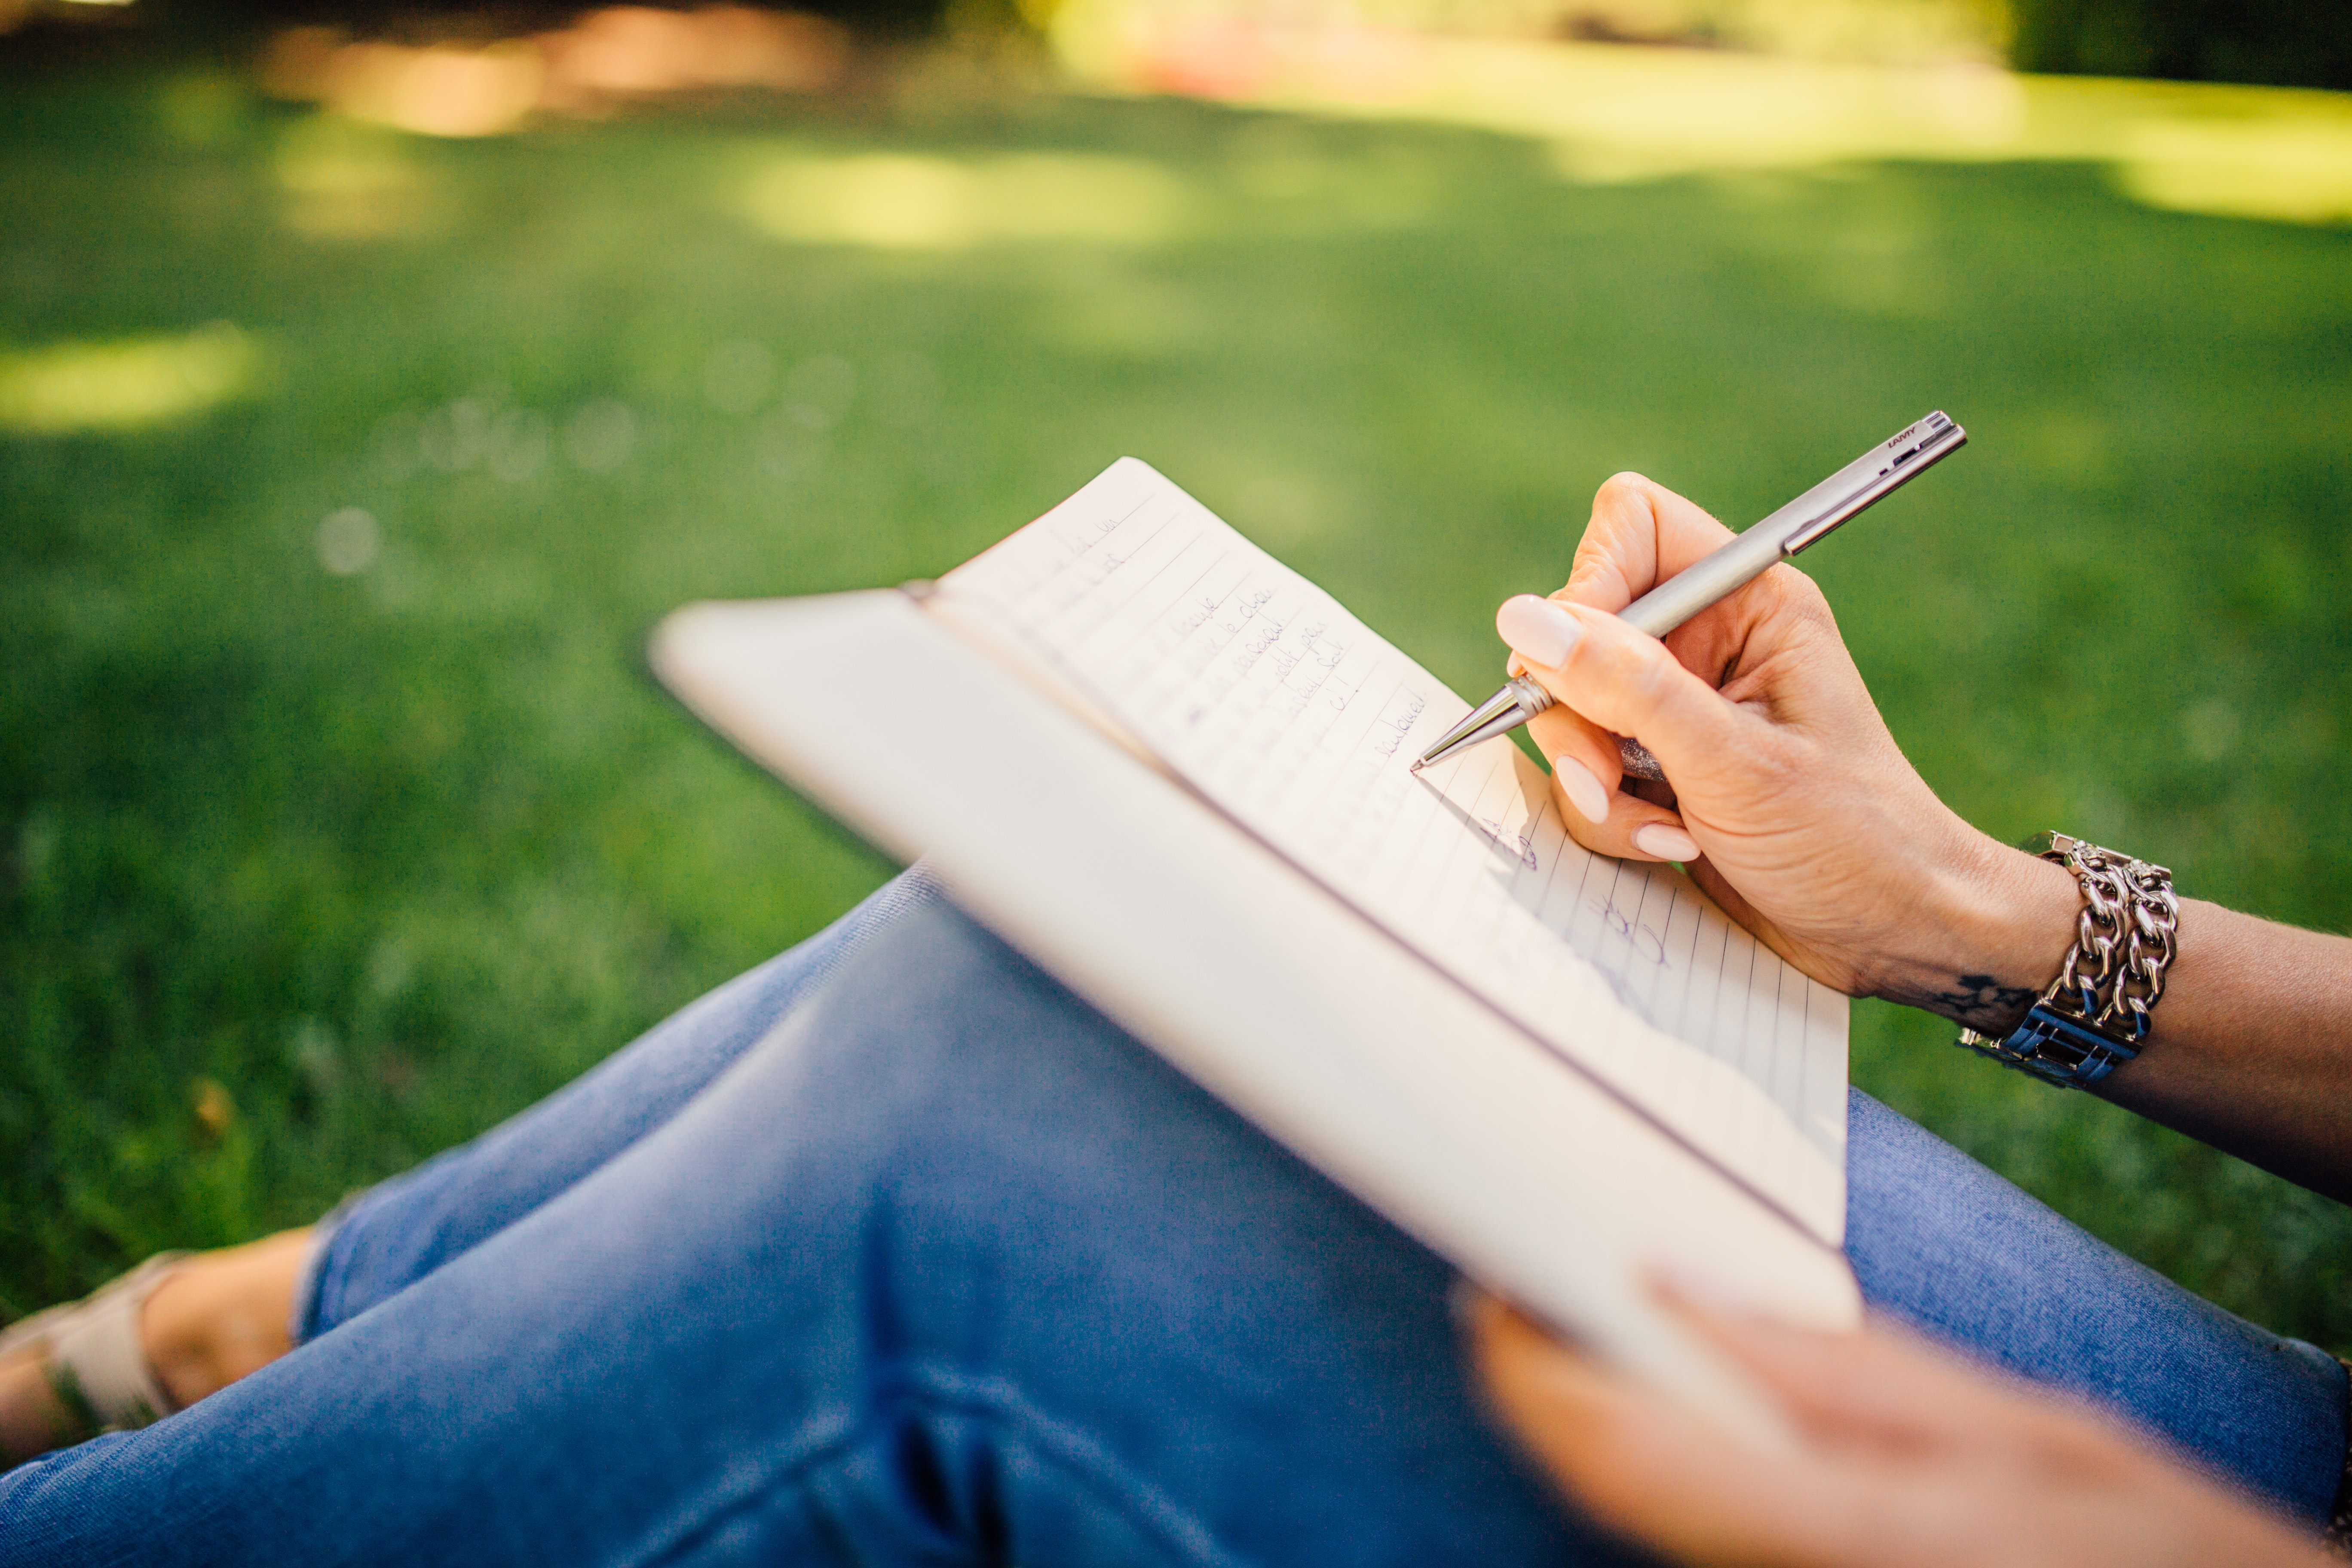 Woman writing in a journal sitting on grass.